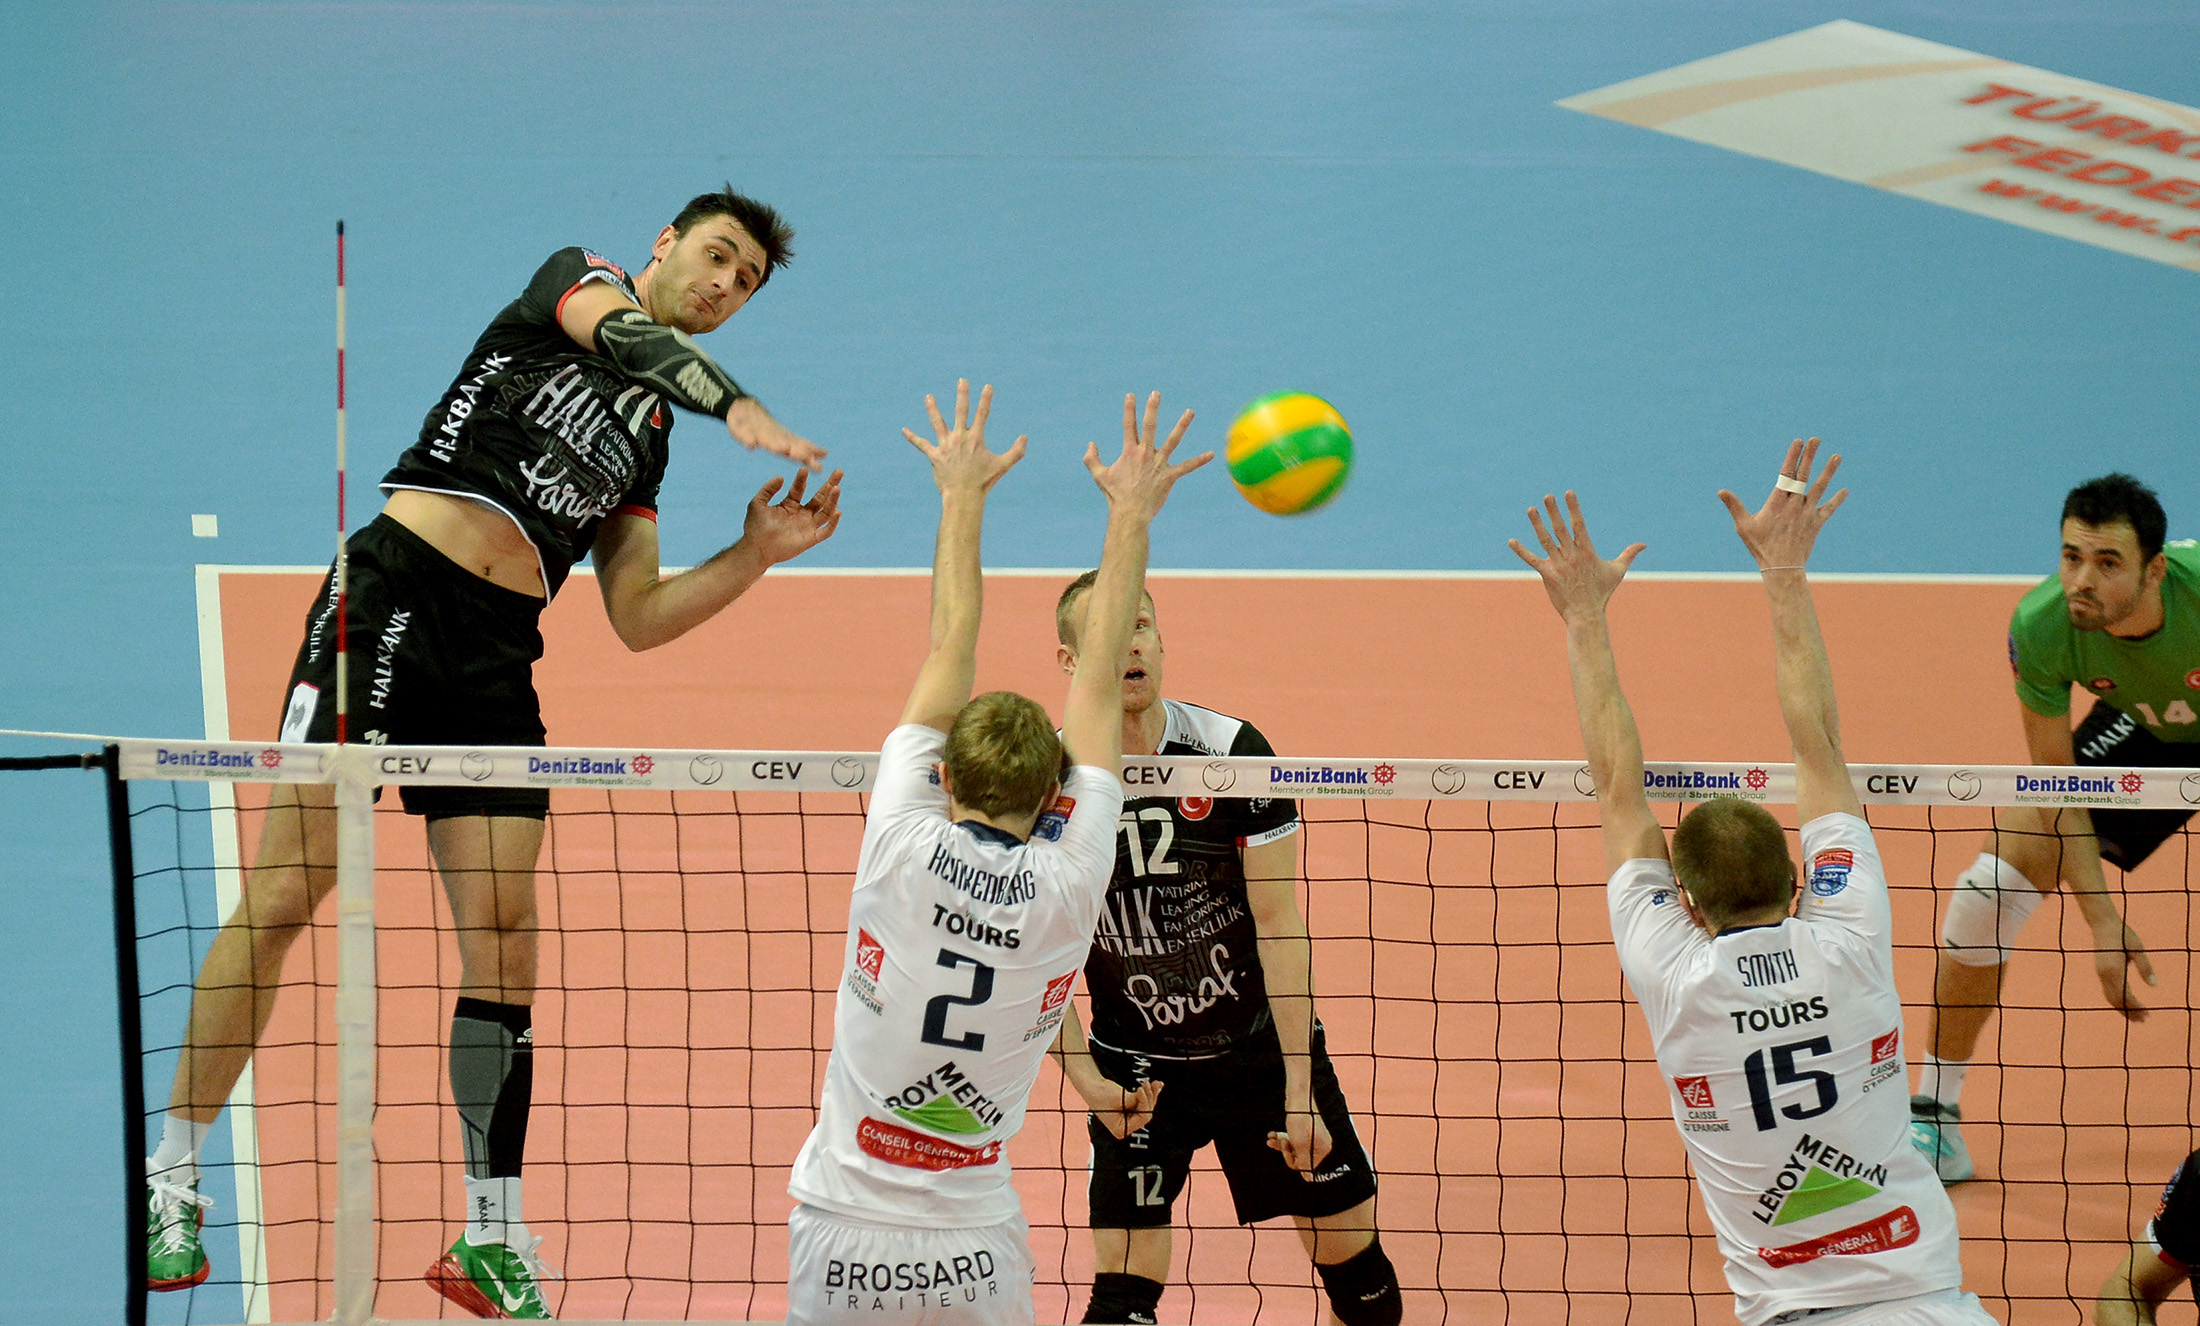 Bulgarian Tsvetan Sokolov led the match with 15 kills, two aces and a block for Halkbank Ankara